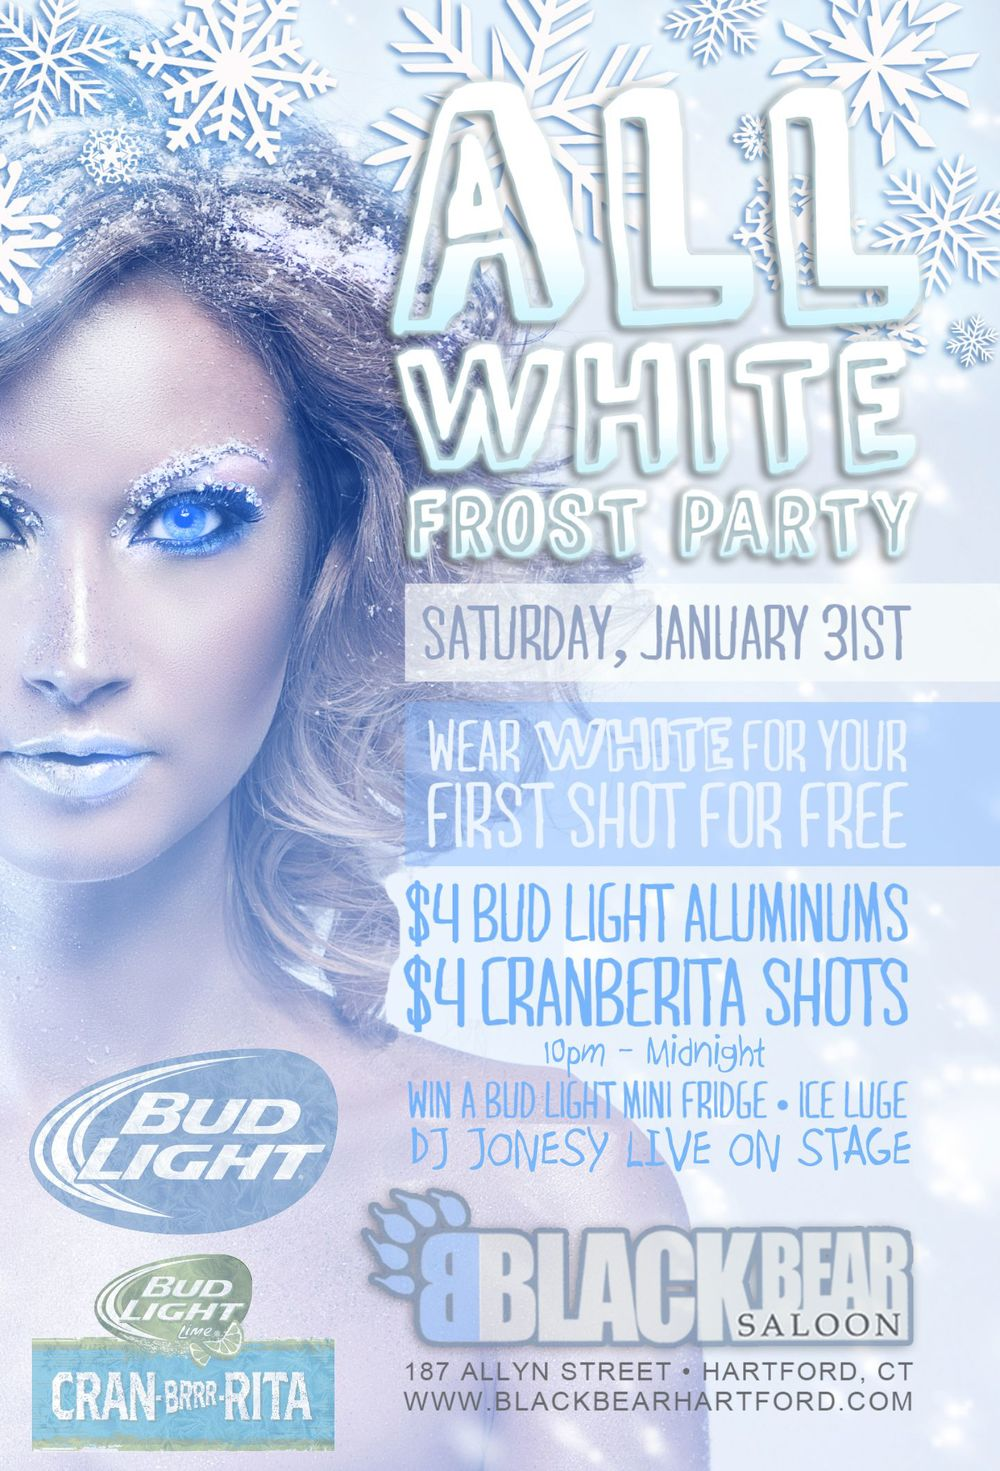 Saturday, January 31st we bring the party to Black Bear for the ALL WHITE FROST PARTY.  Music by yours truly starts at 9:30pm.  $4 Aluminum Bud Light Bottles.  $4 Cranberita Shots.  Ice Luge on Stage + Bud Light Mini Fridge Giveaway!  Meet us there!